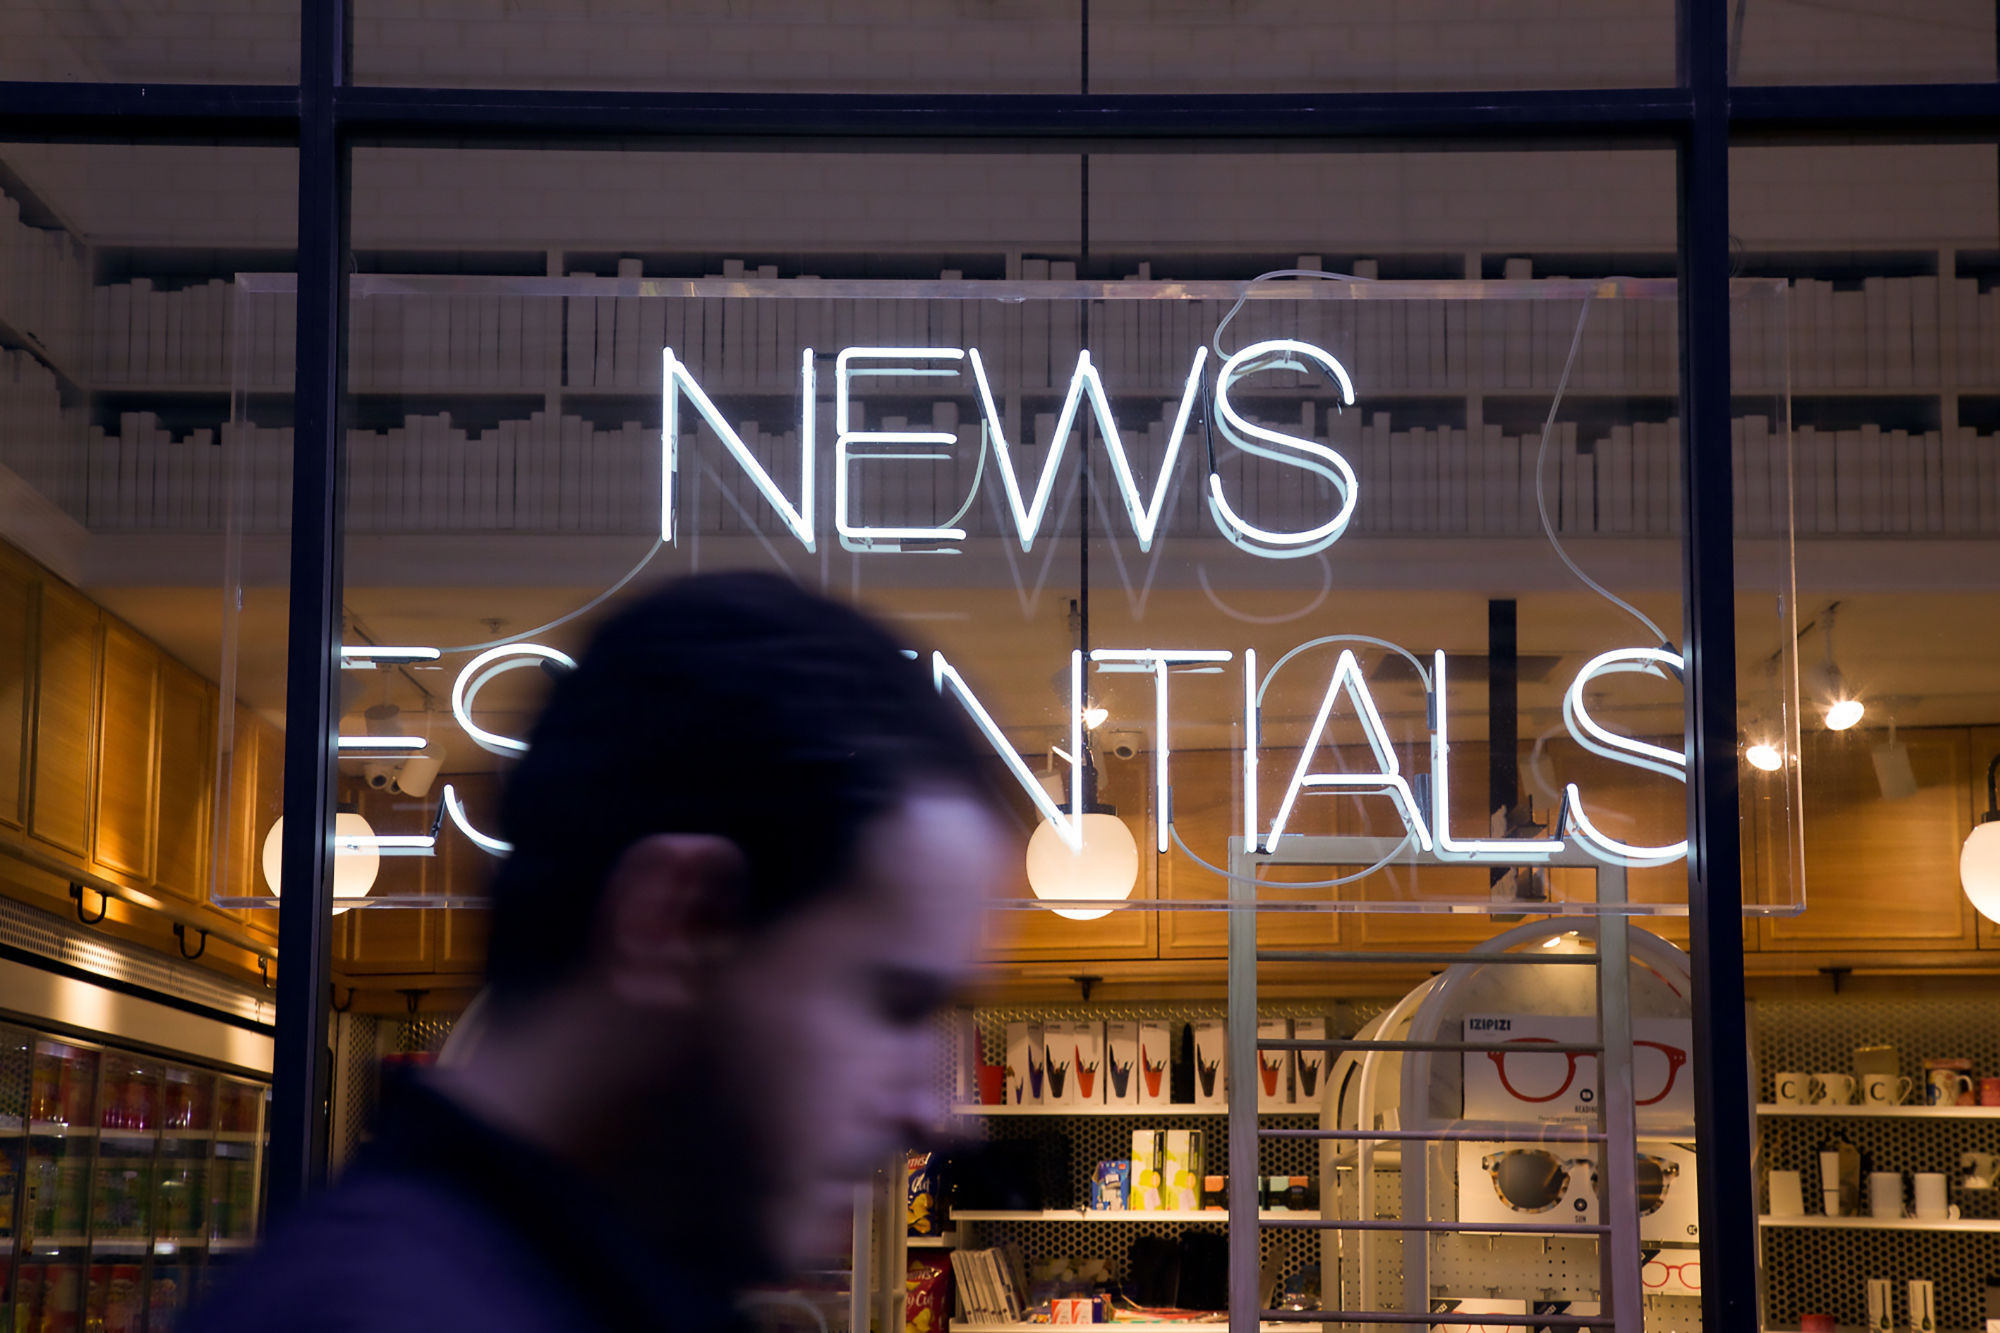 News sign in window